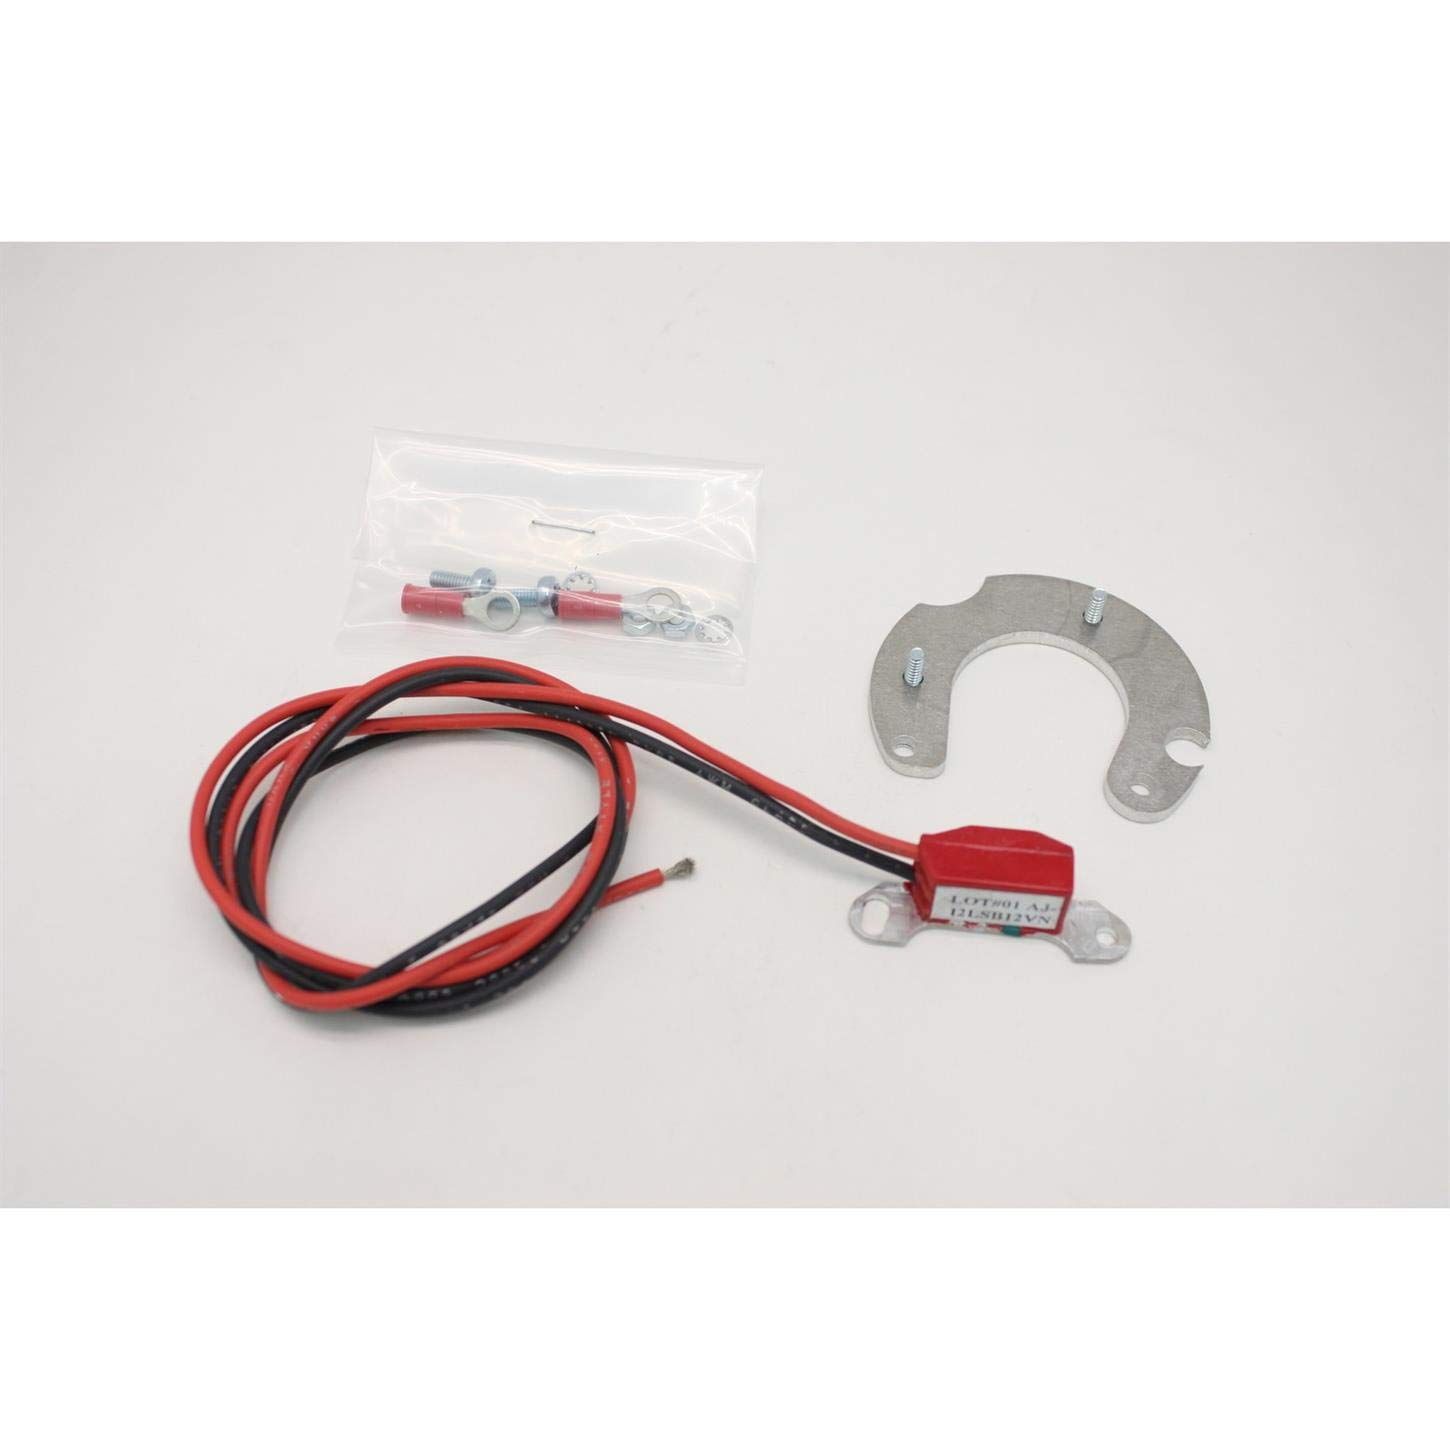 Pertronix 9MR-LS3 Ignitor II for Marelli 4 Cylinder Engine by Pertronix